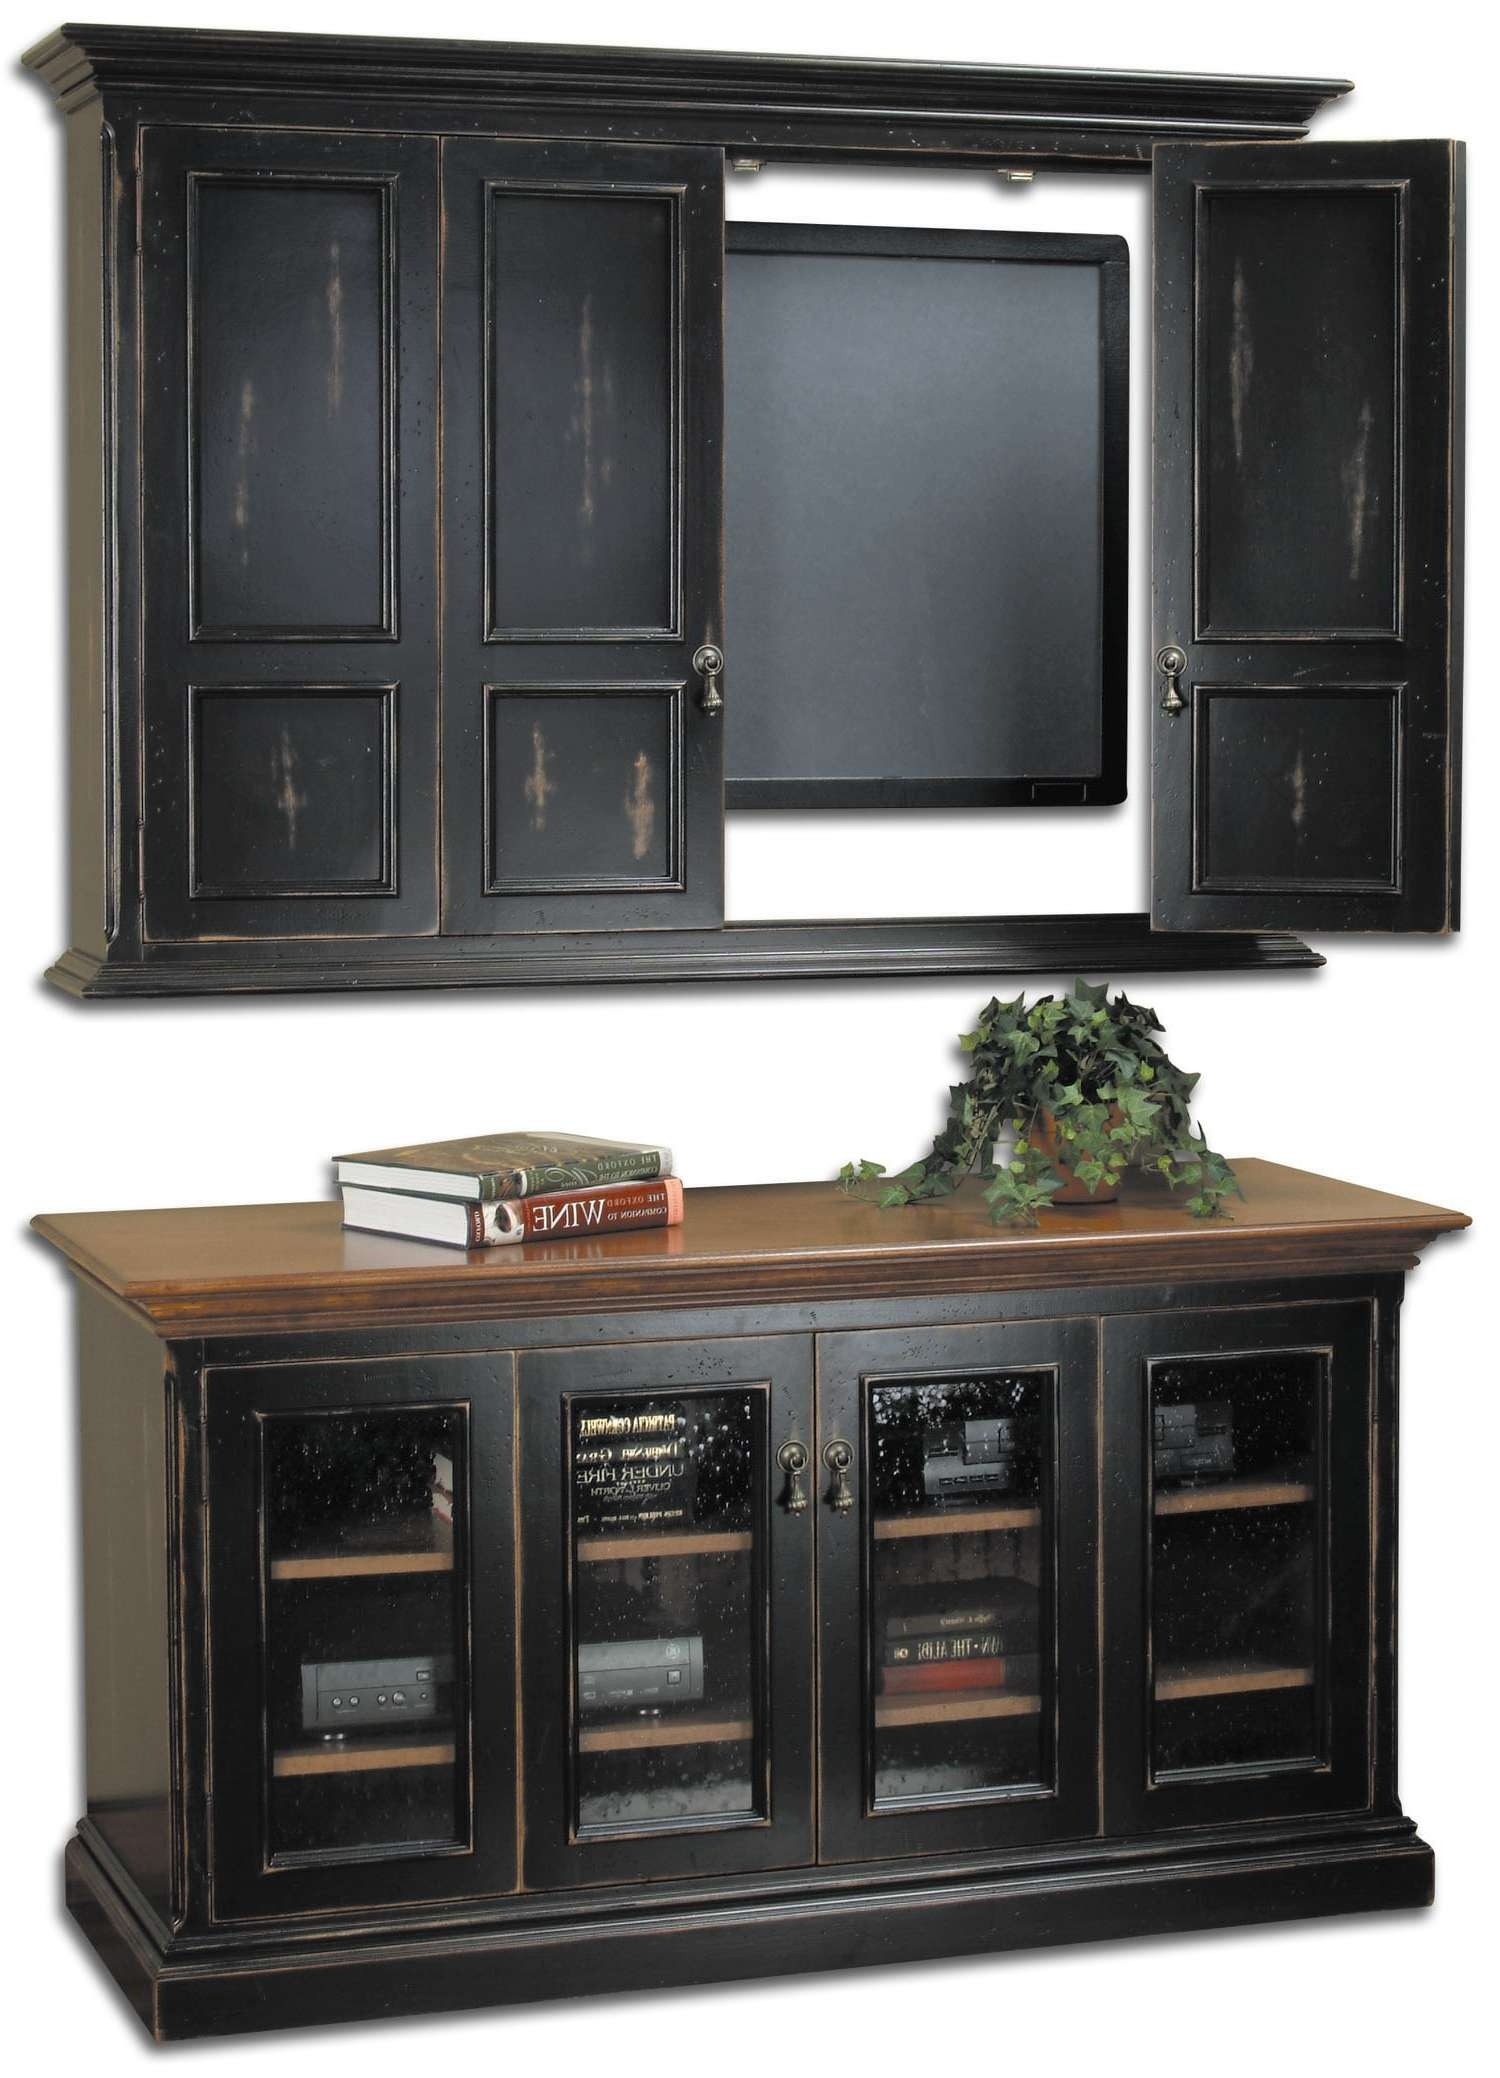 Traditional Entertainment Centers For Wall Mounted Flat Screen Tvs Intended For Traditional Tv Cabinets (View 9 of 20)